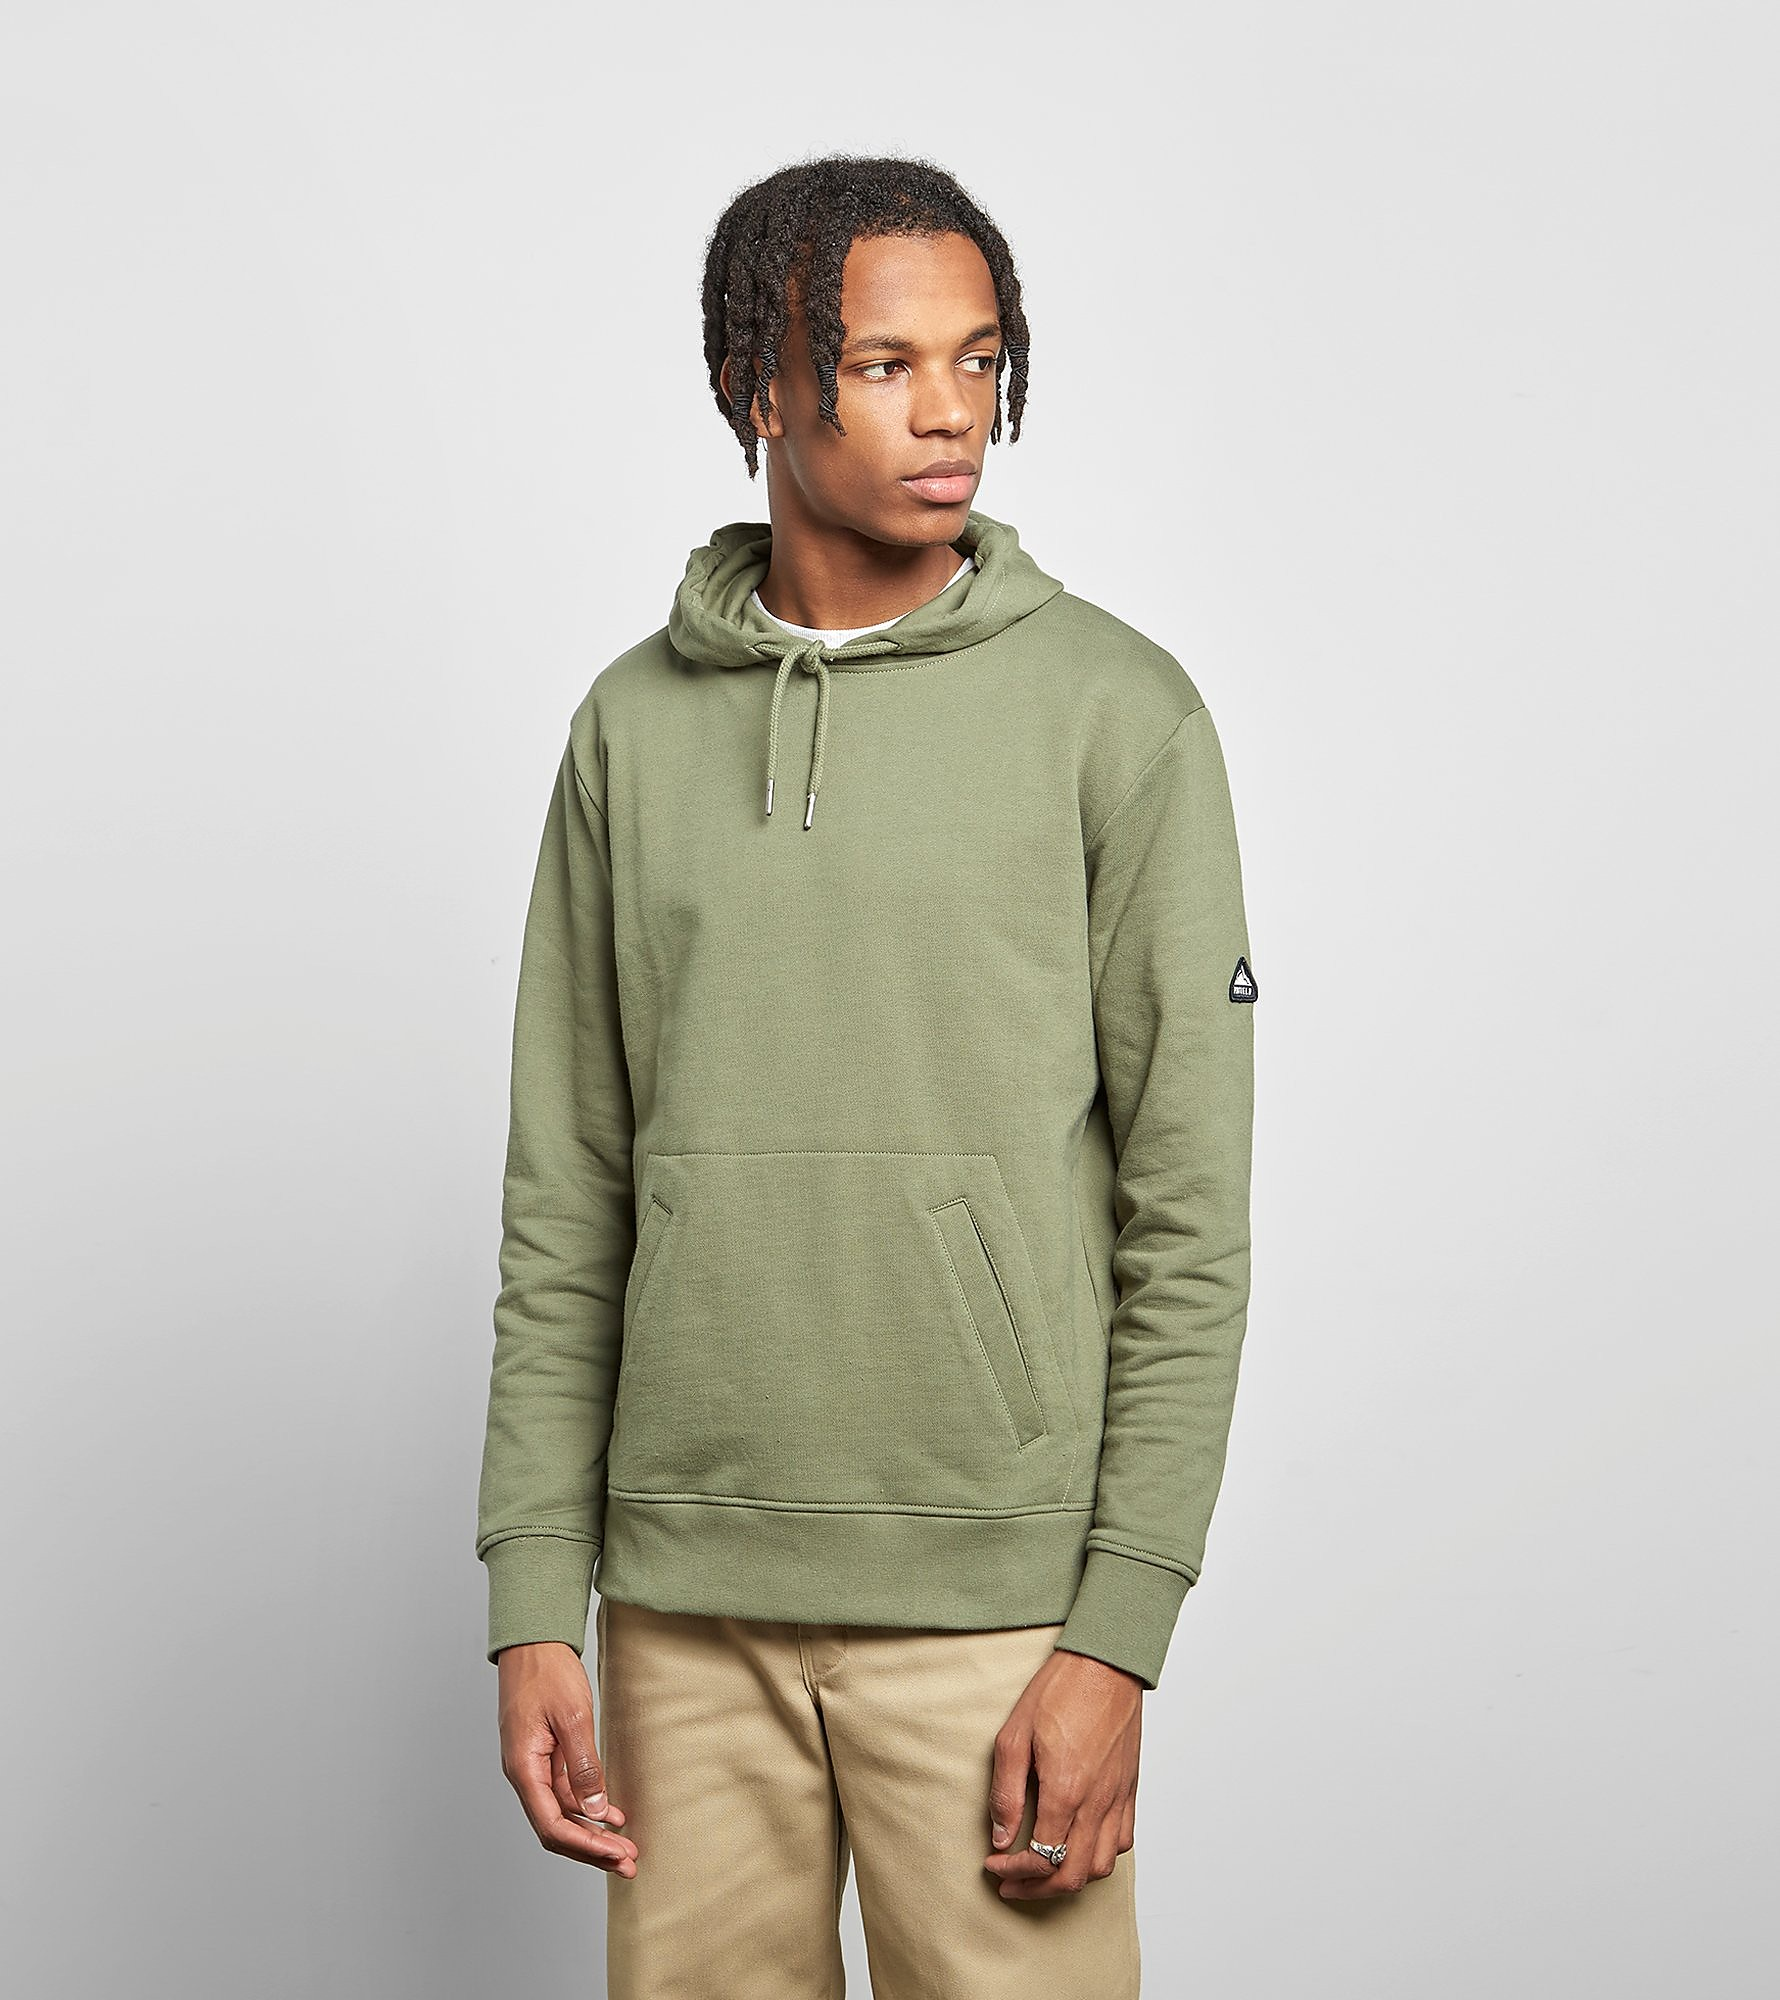 Penfield Westbridge Hoody